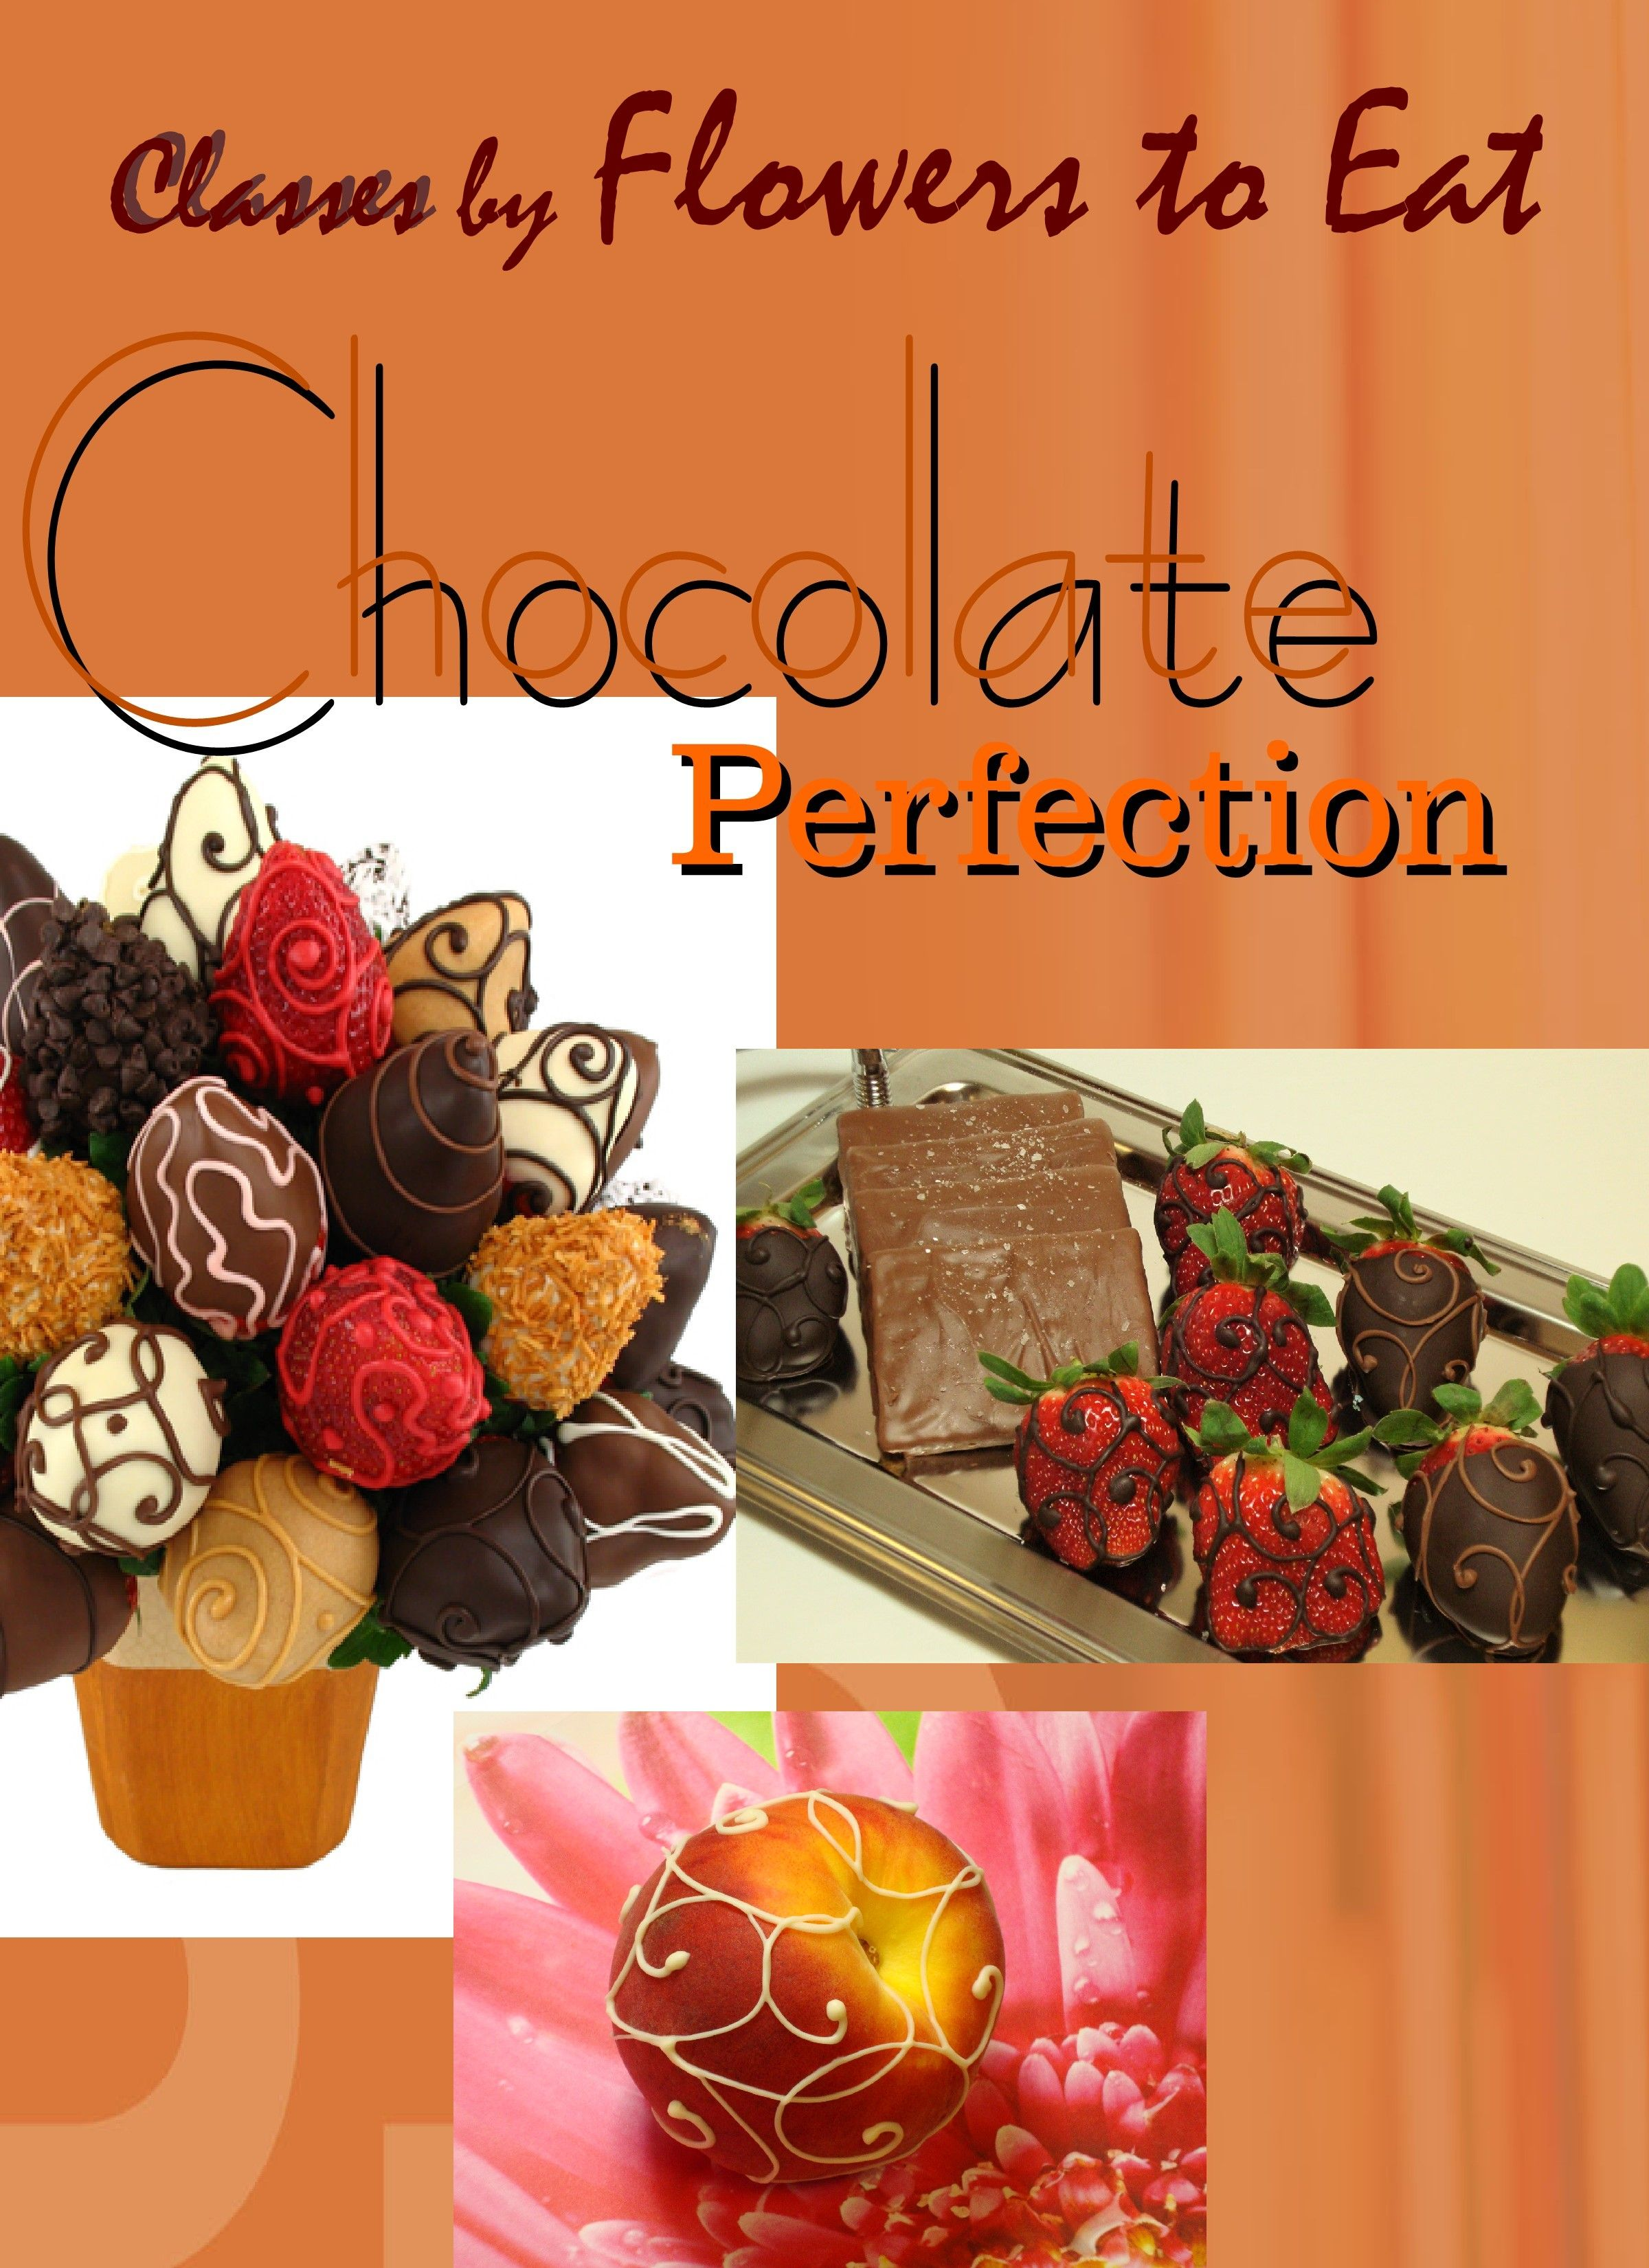 Working with chocolate and fruit!